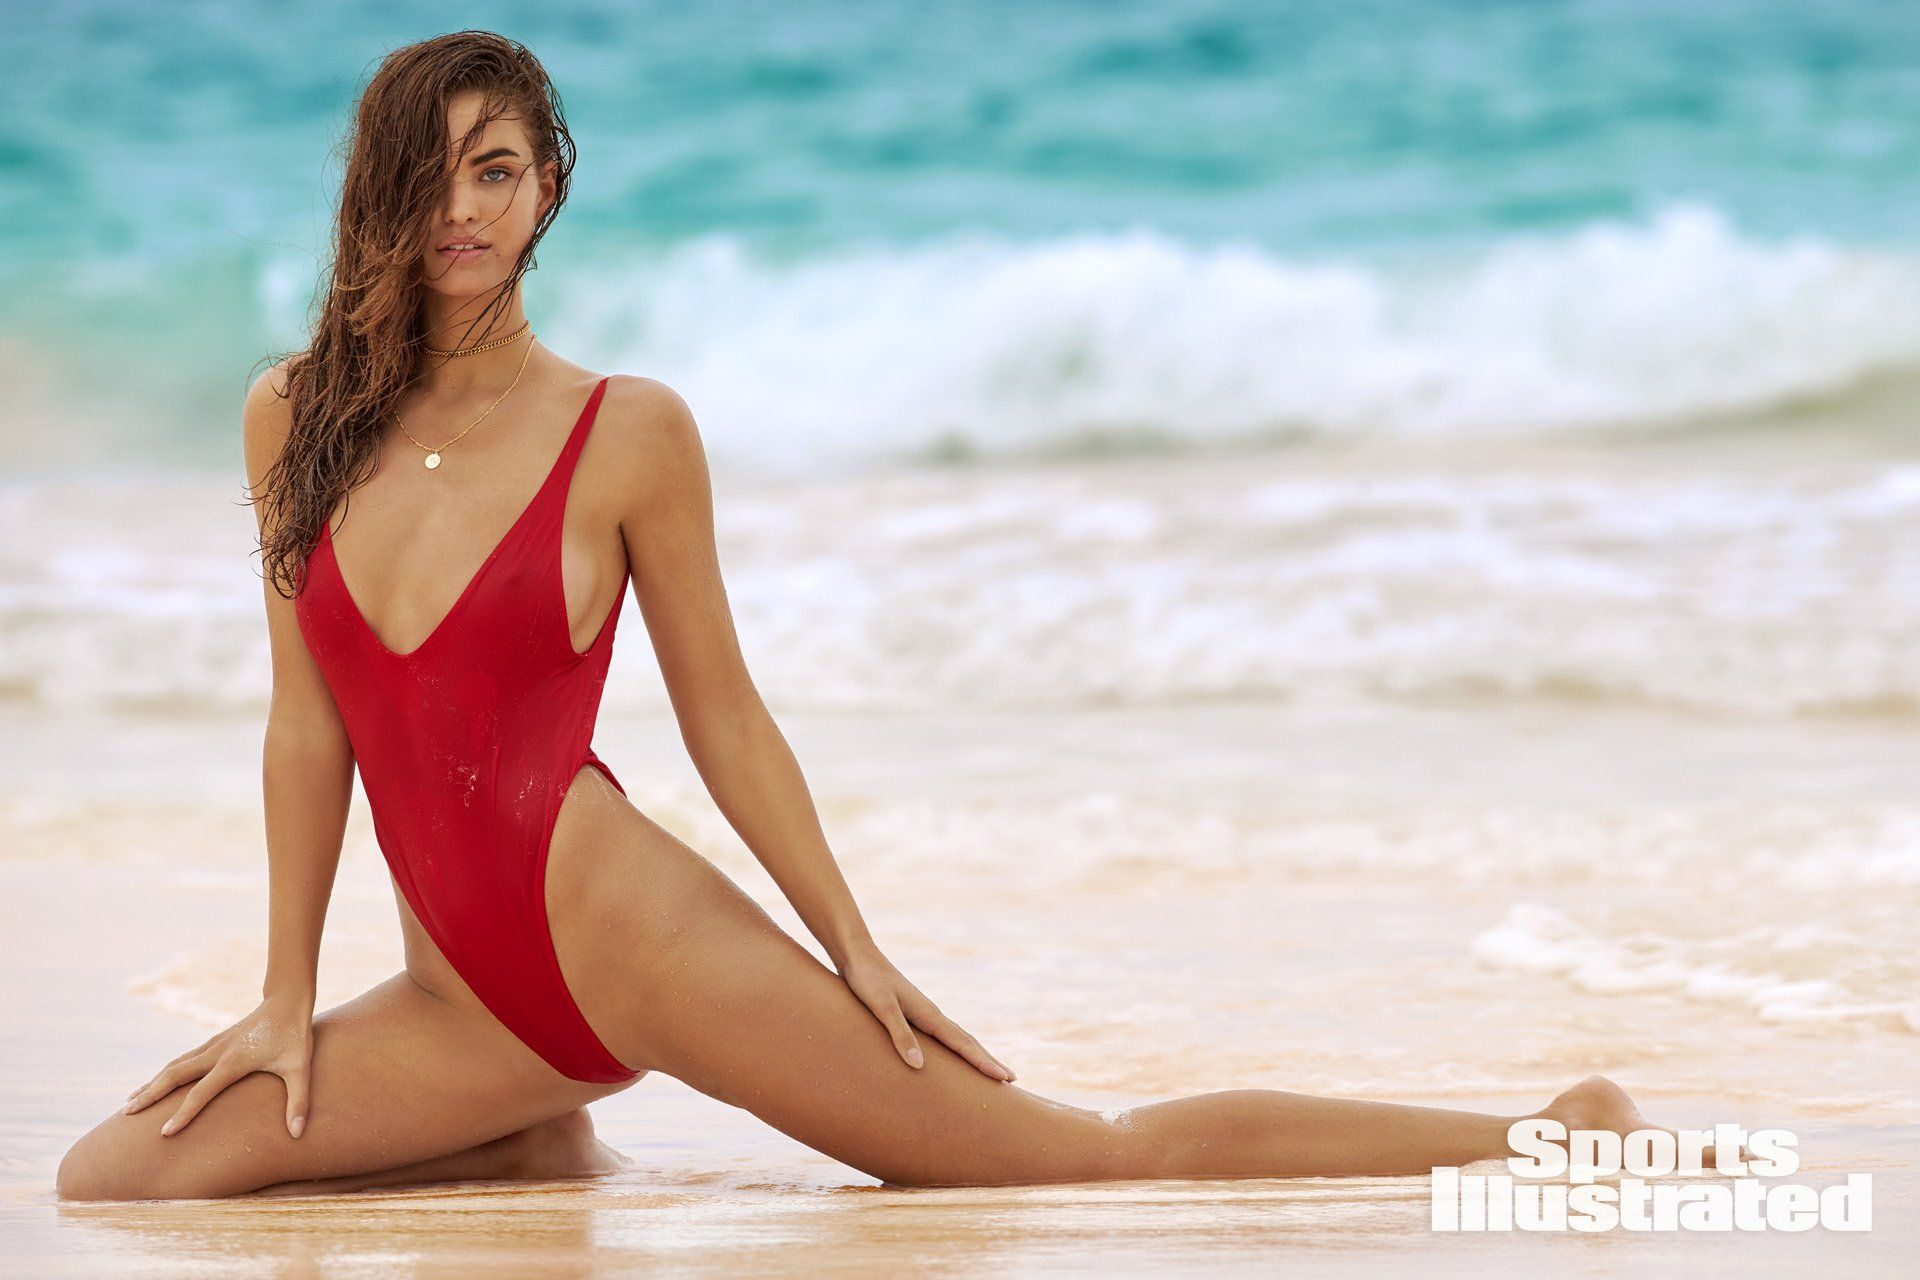 Boobs Robin Holzken naked (73 photos), Ass, Paparazzi, Twitter, cleavage 2006